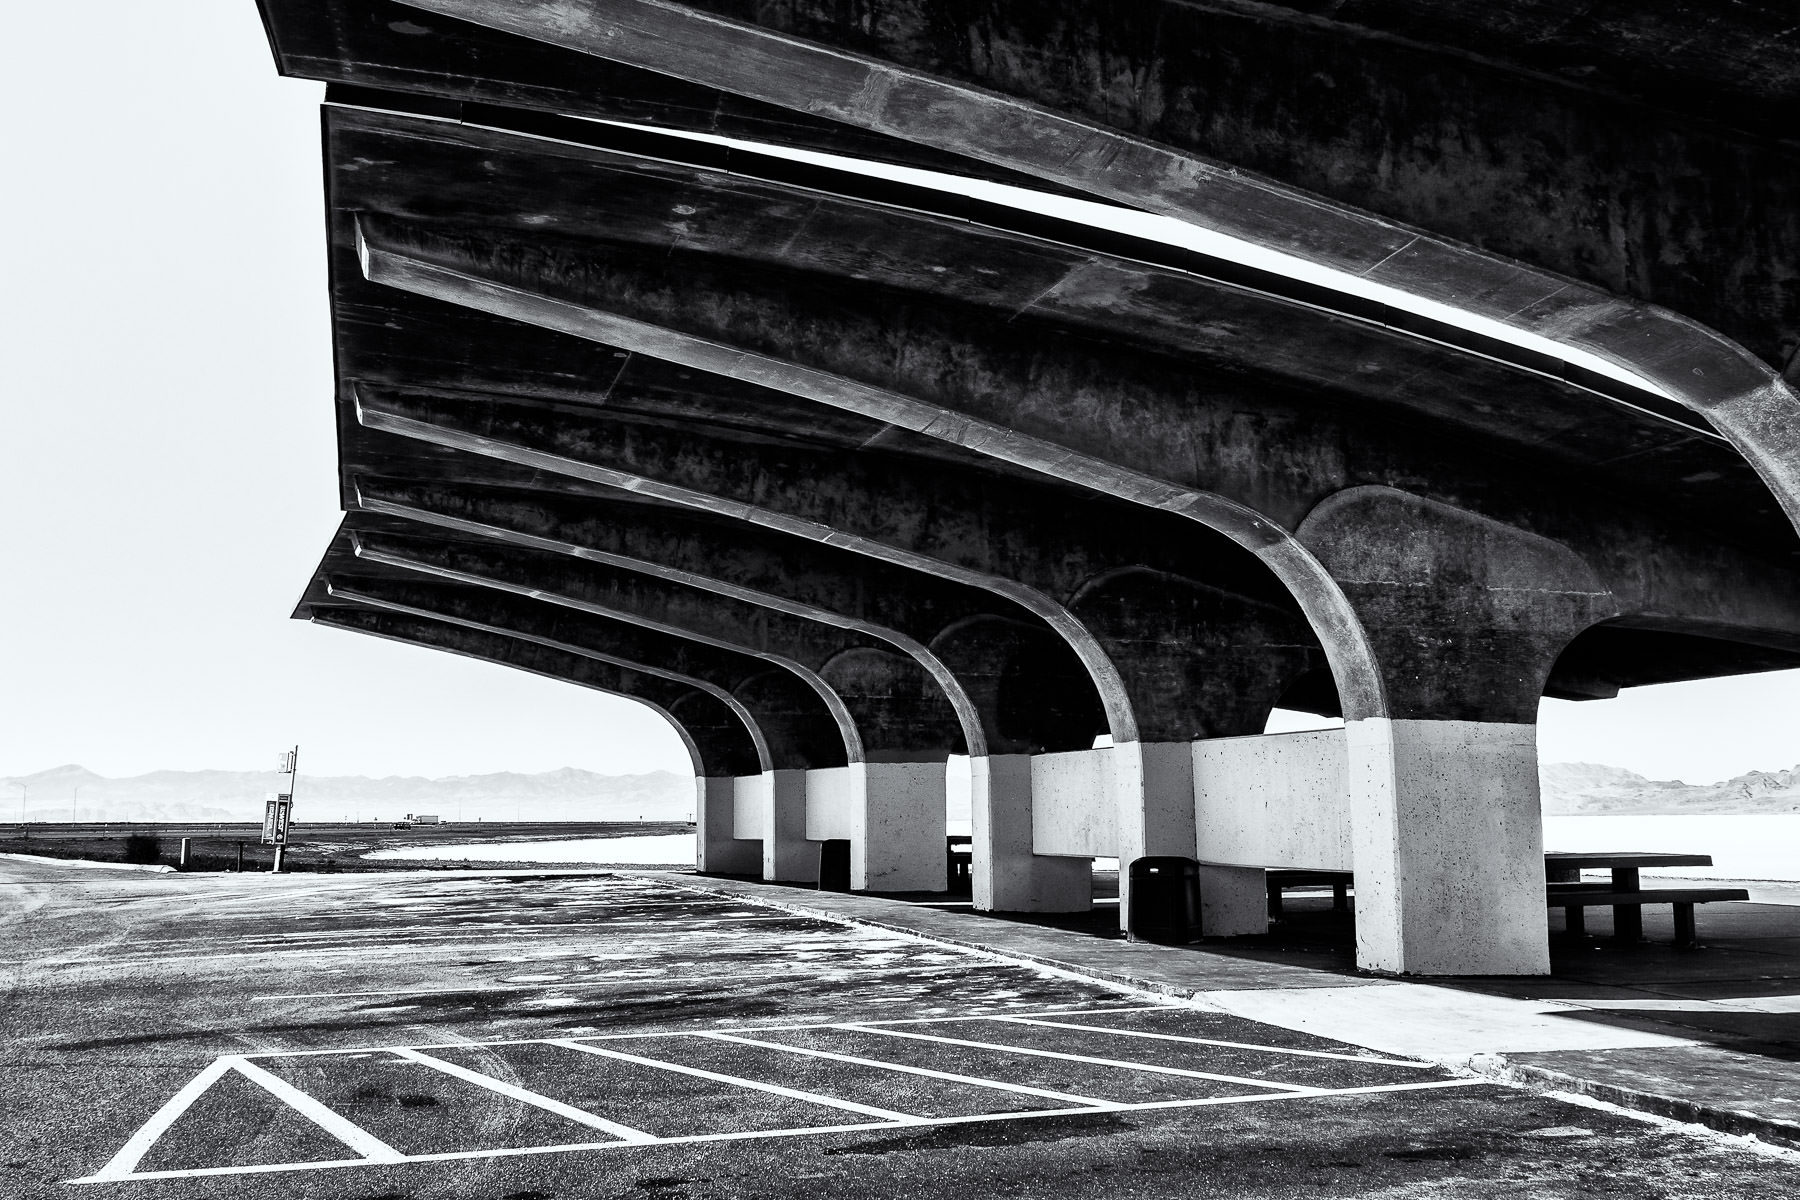 A cast concrete roof at a rest stop along Interstate 80 in the Bonneville Salt Flats, Utah.